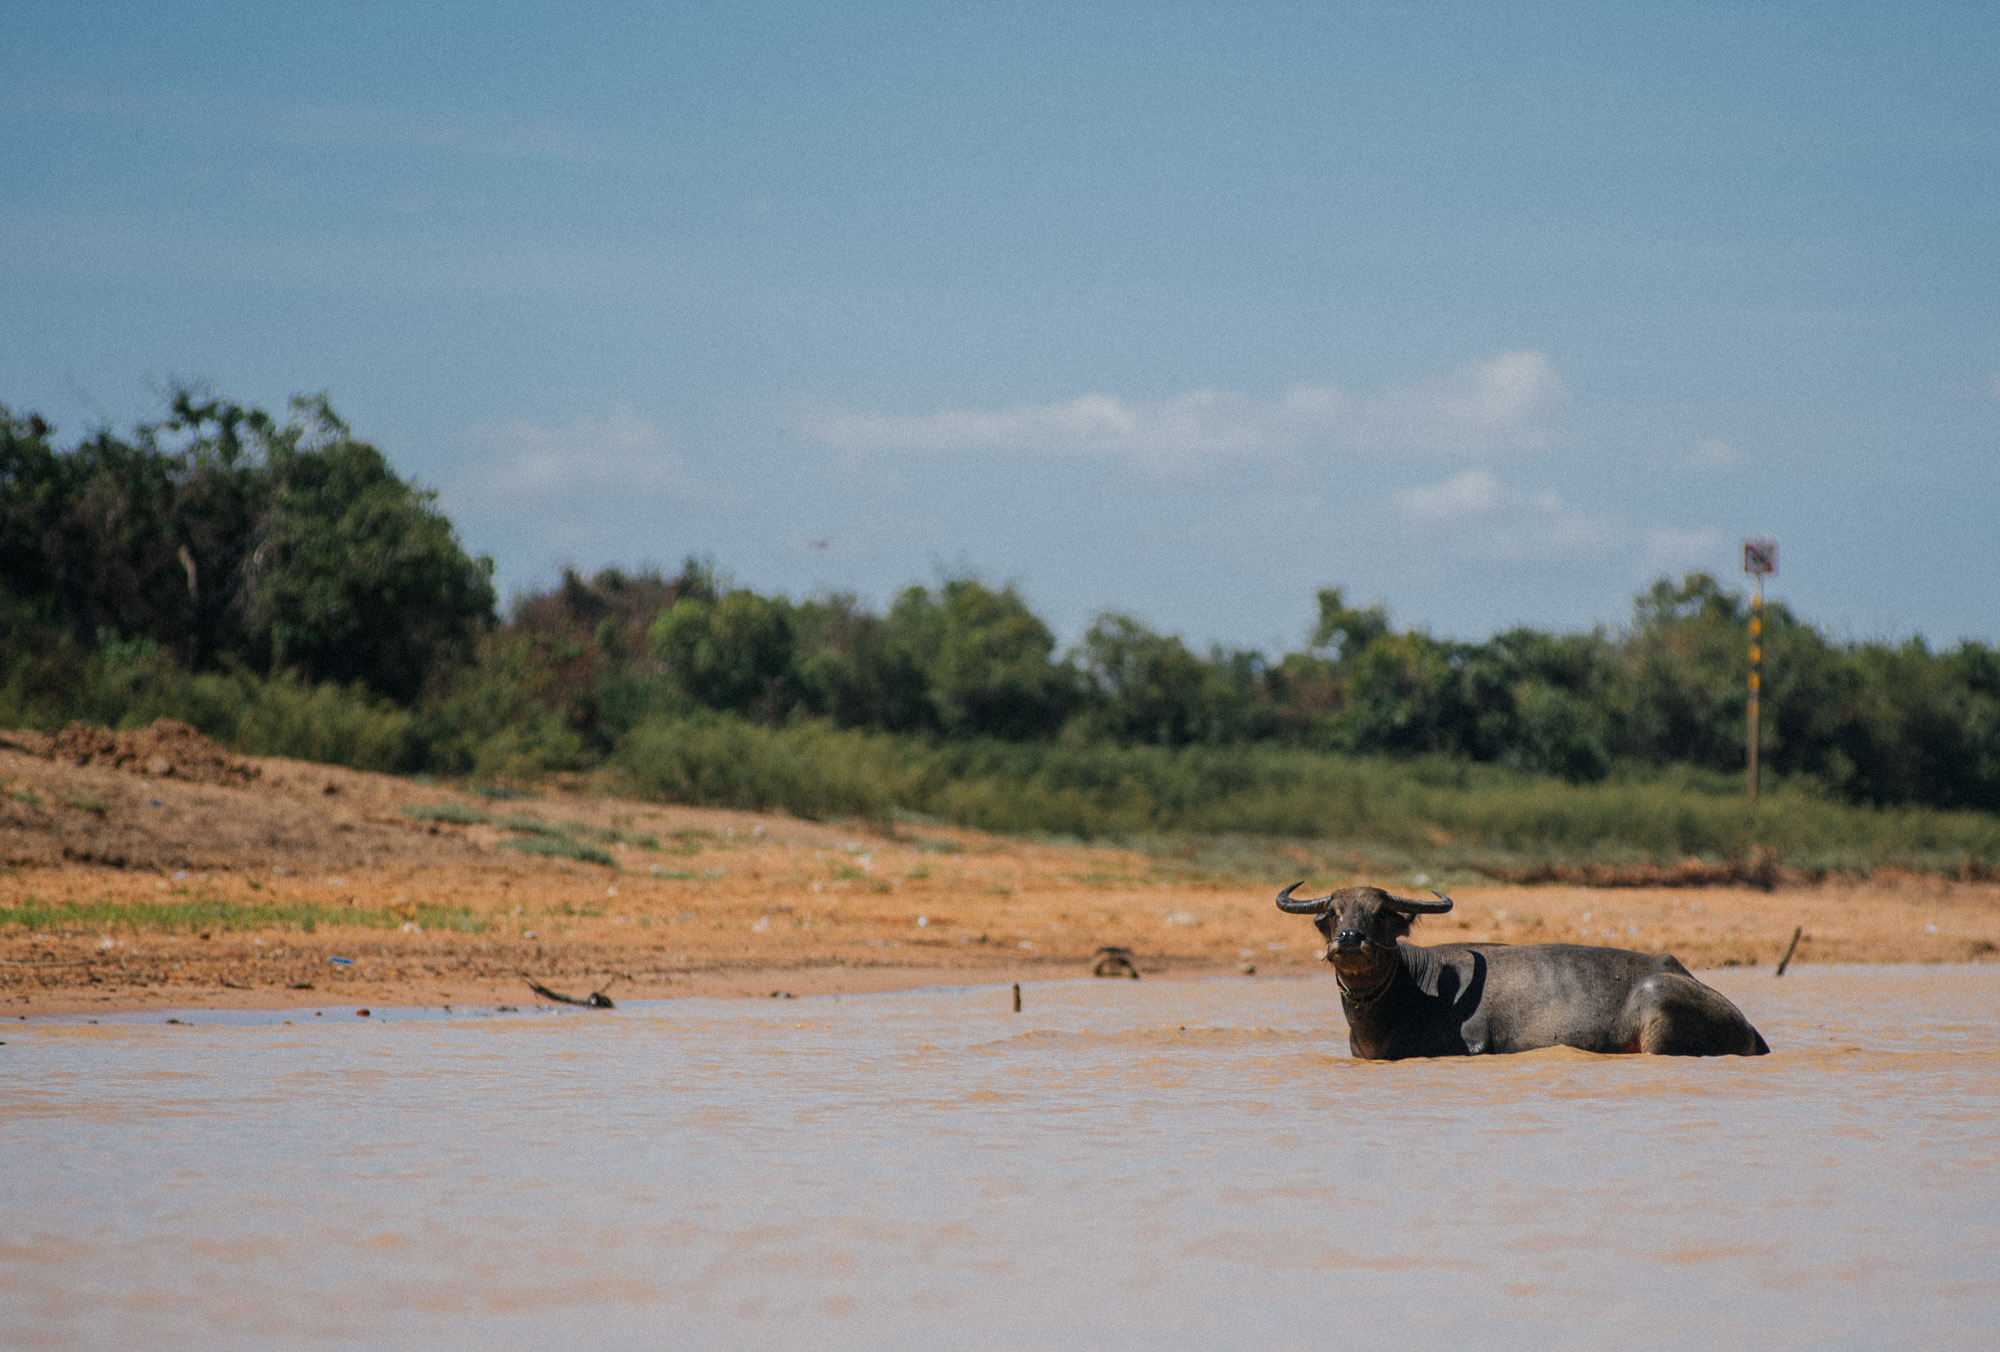 Water buffalos are a common site in this region of Cambodia.